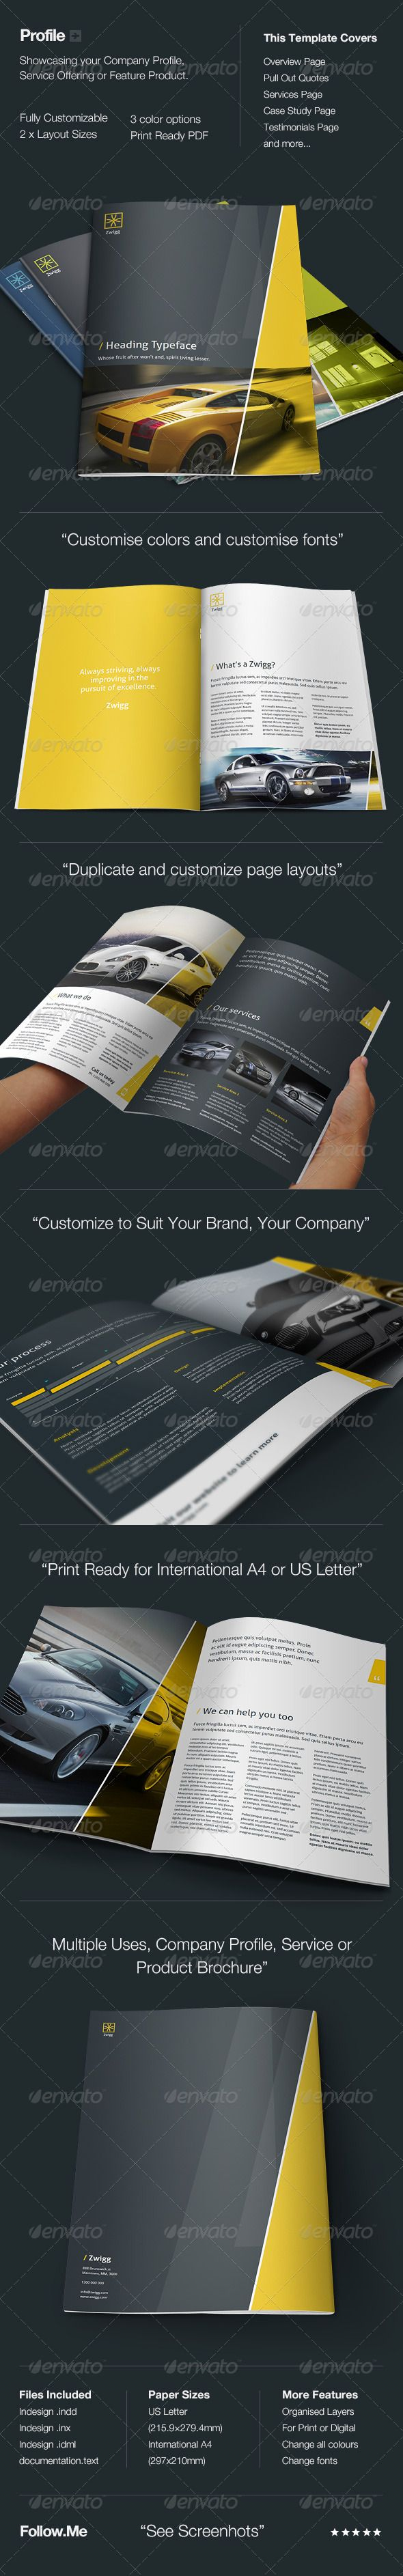 pany Profile GraphicRiver Profile is a Sharp and Professional